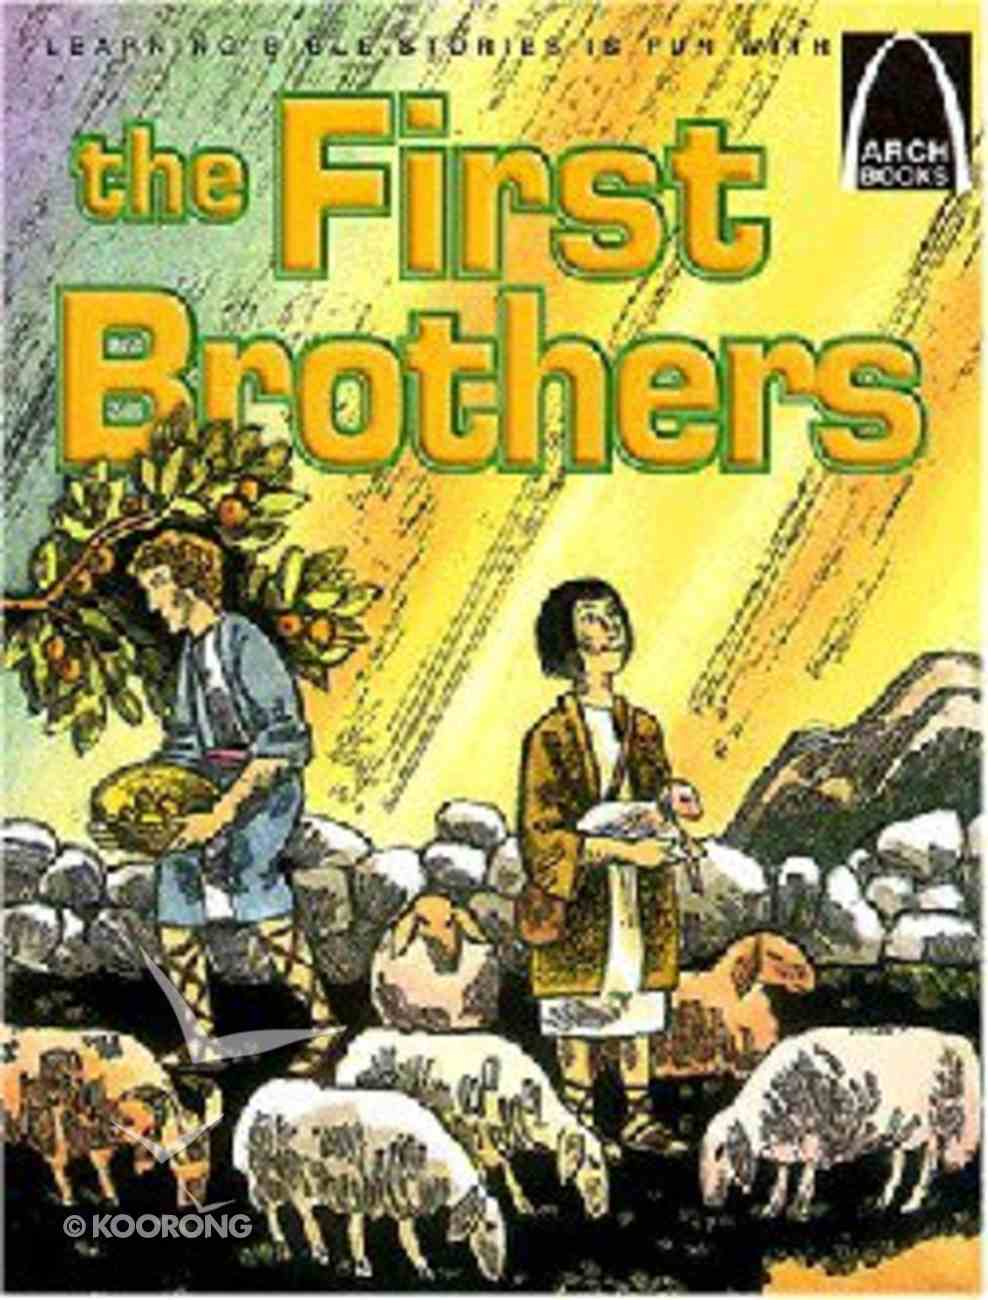 The First Brothers (Arch Books Series) Paperback